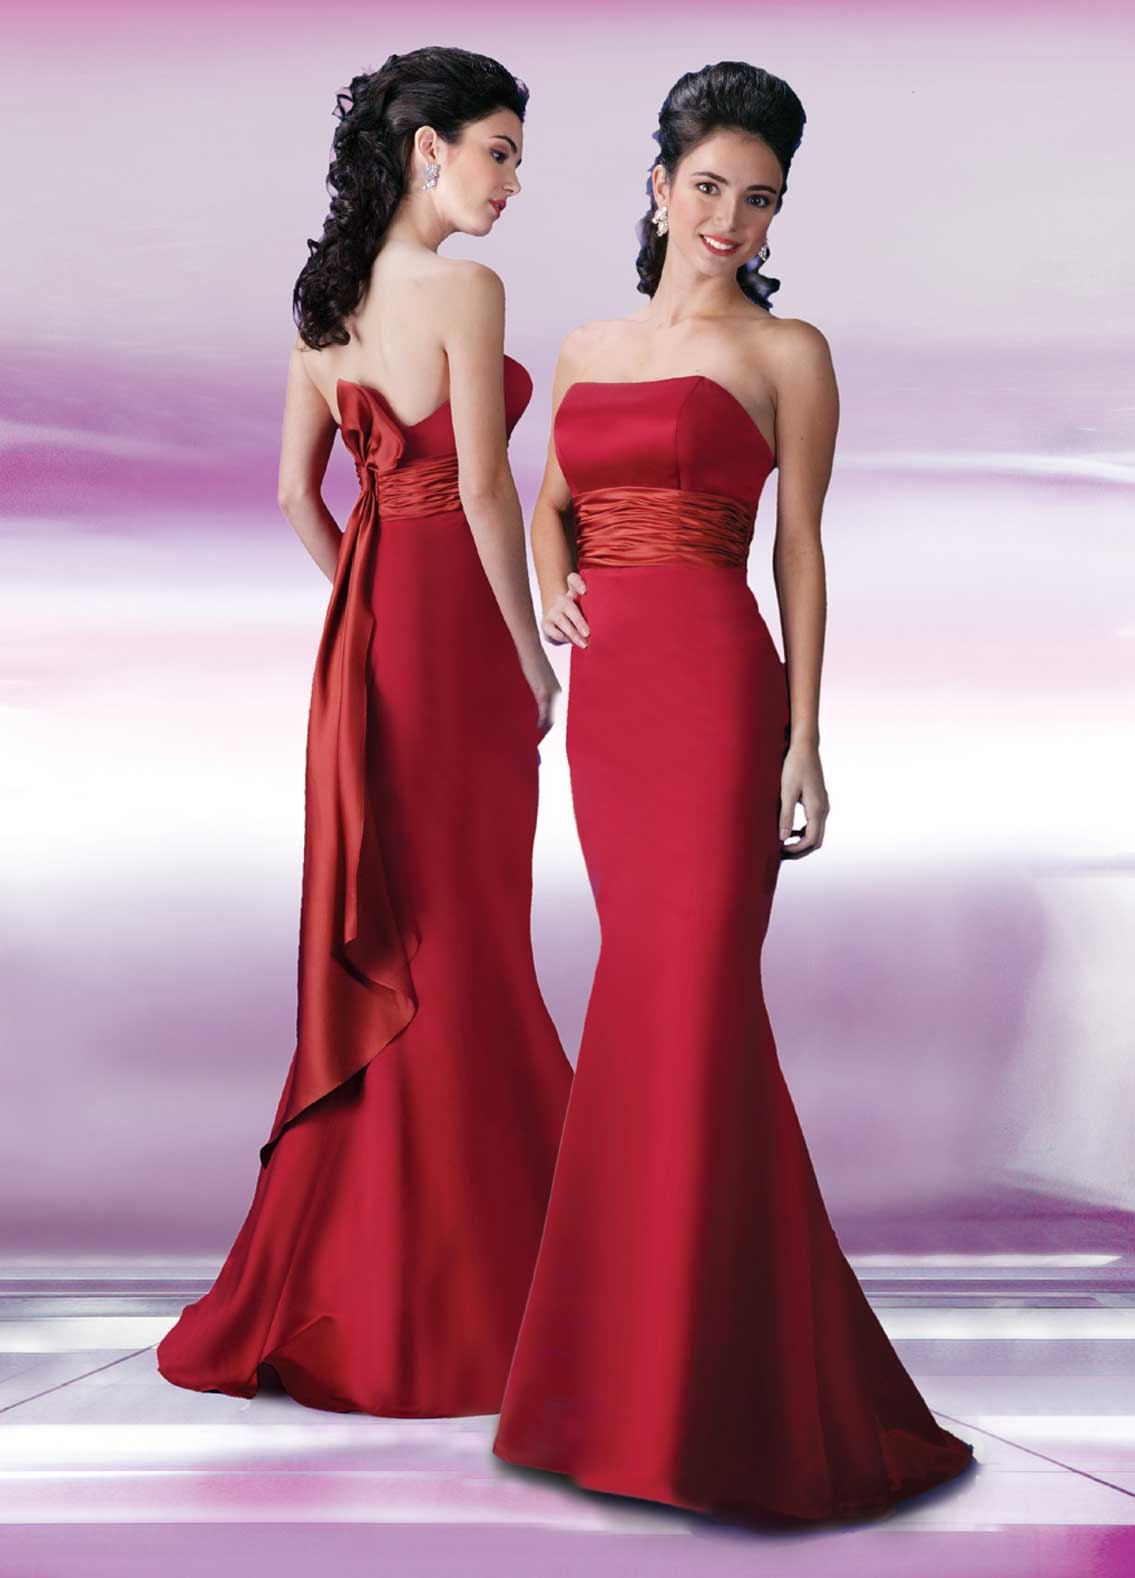 How to Choose Red Bridesmaid Dresses - Bridal Guides